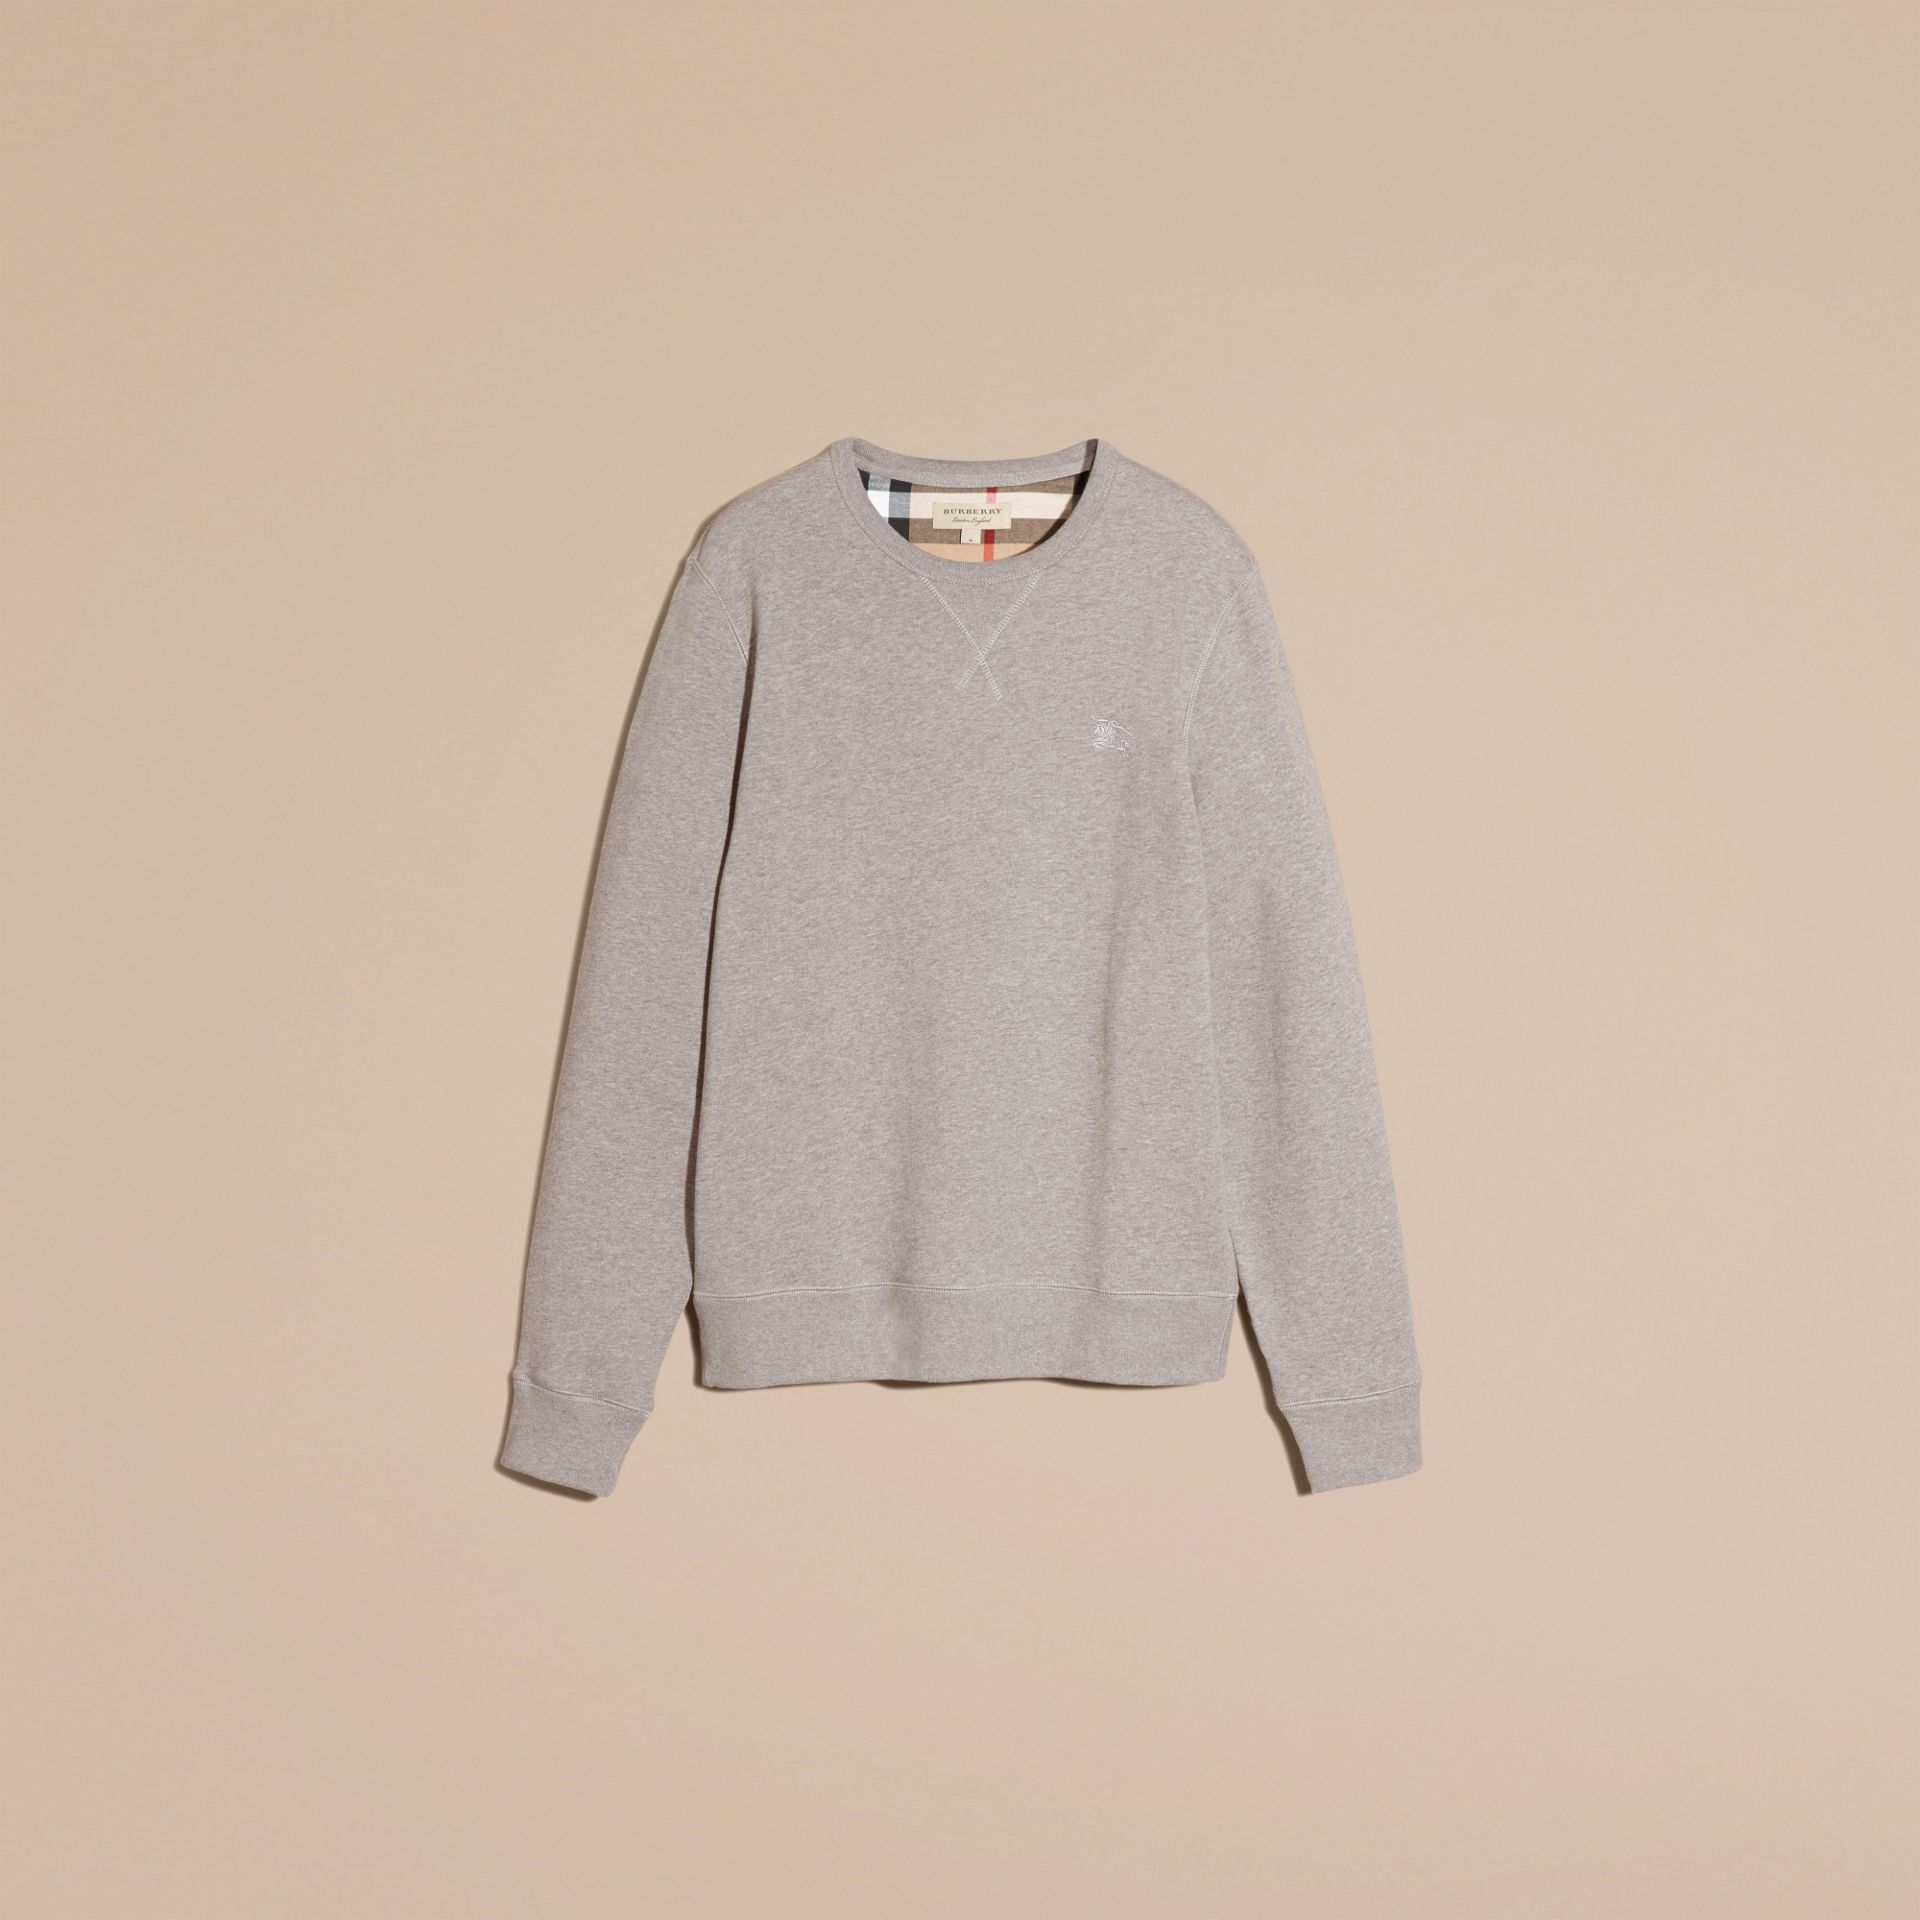 Pale grey melange Cotton Blend Jersey Sweatshirt Pale Grey Melange - gallery image 4